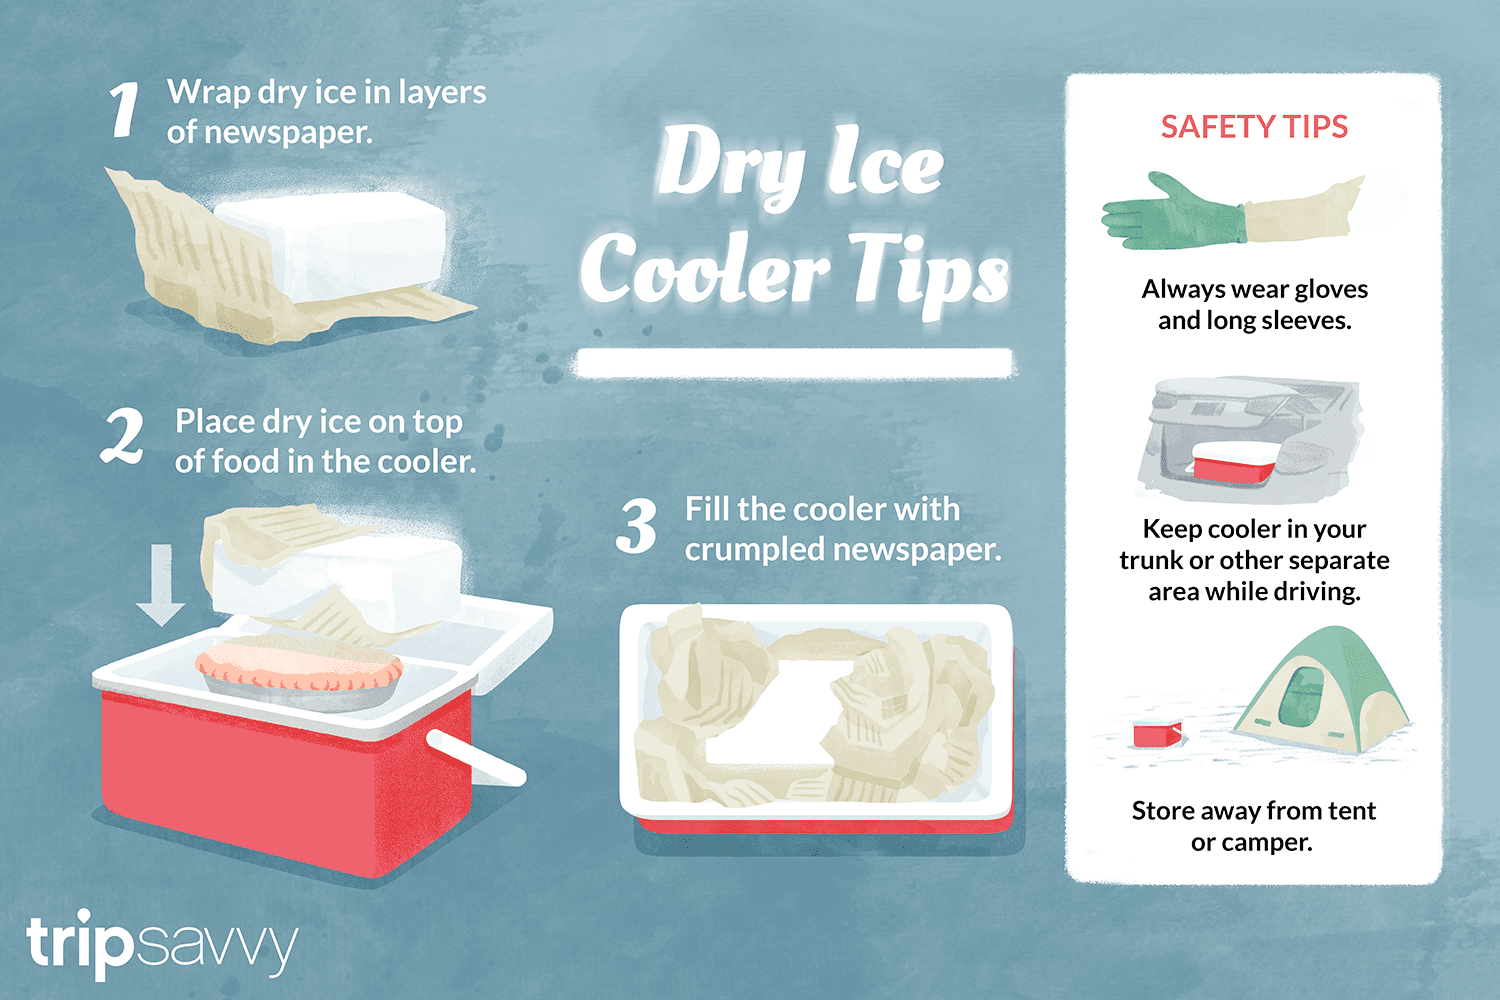 Using Dry Ice in Your Cooler